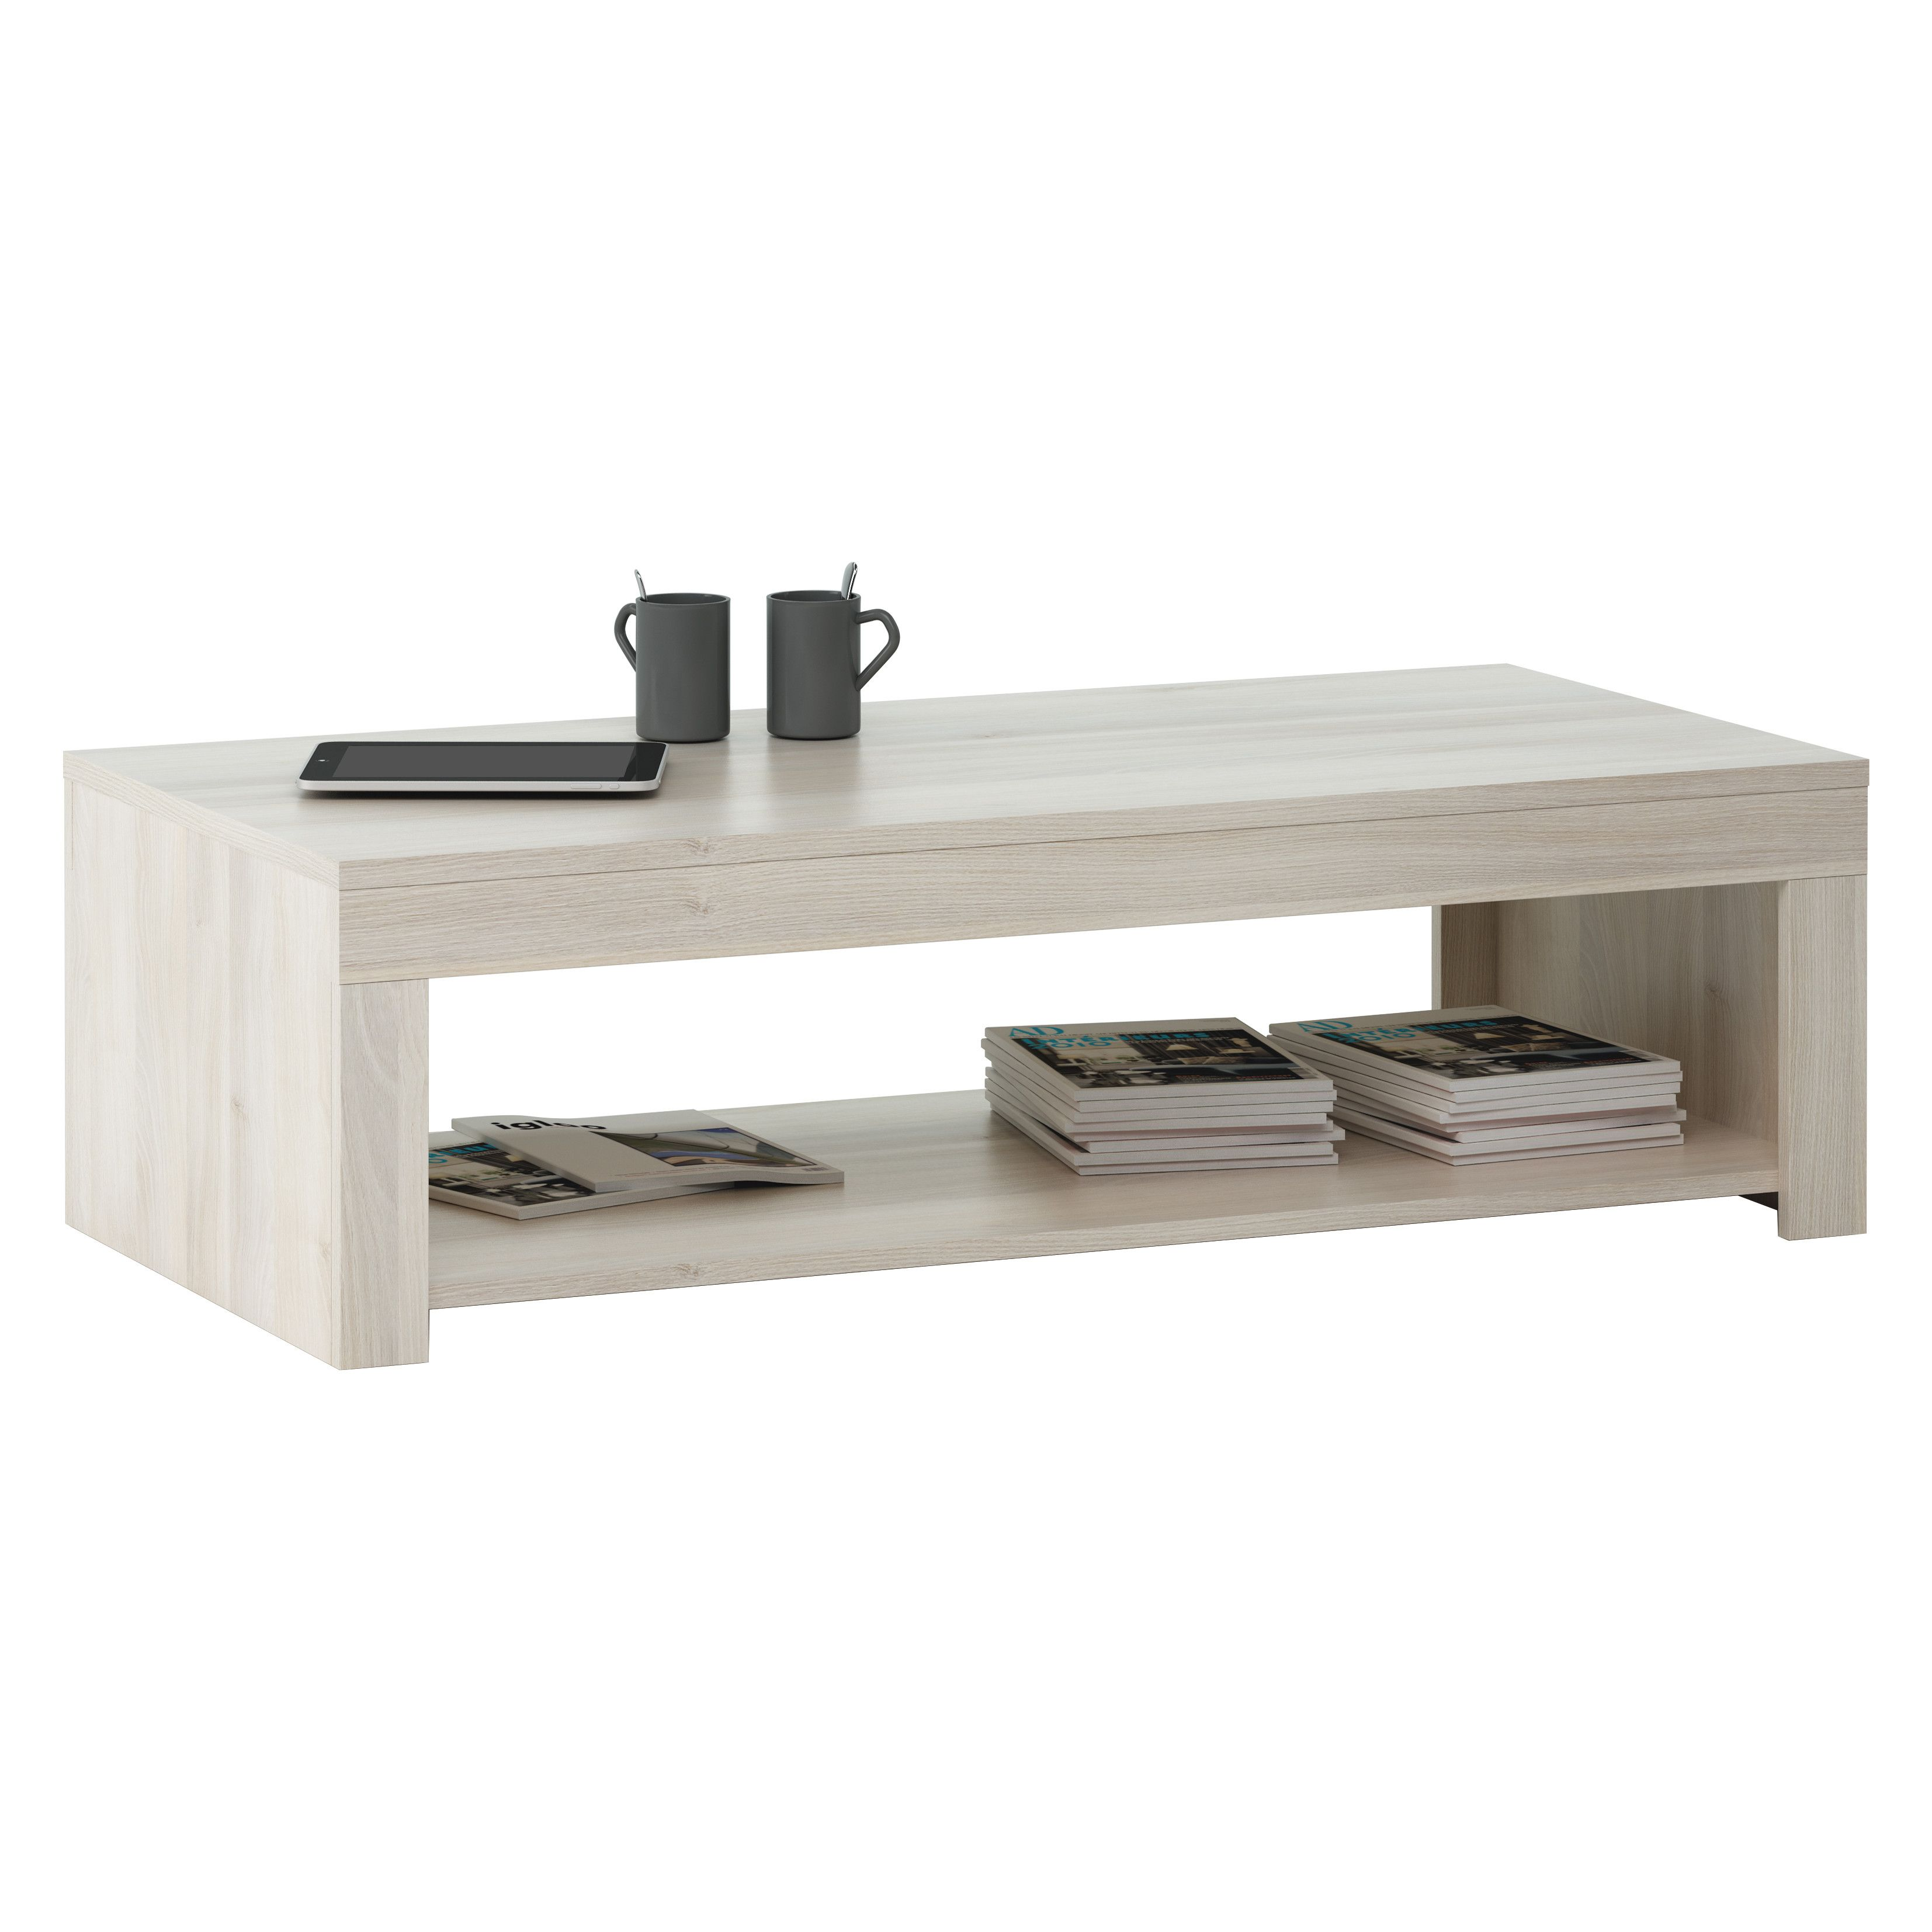 Coffee table products great deals and coffee